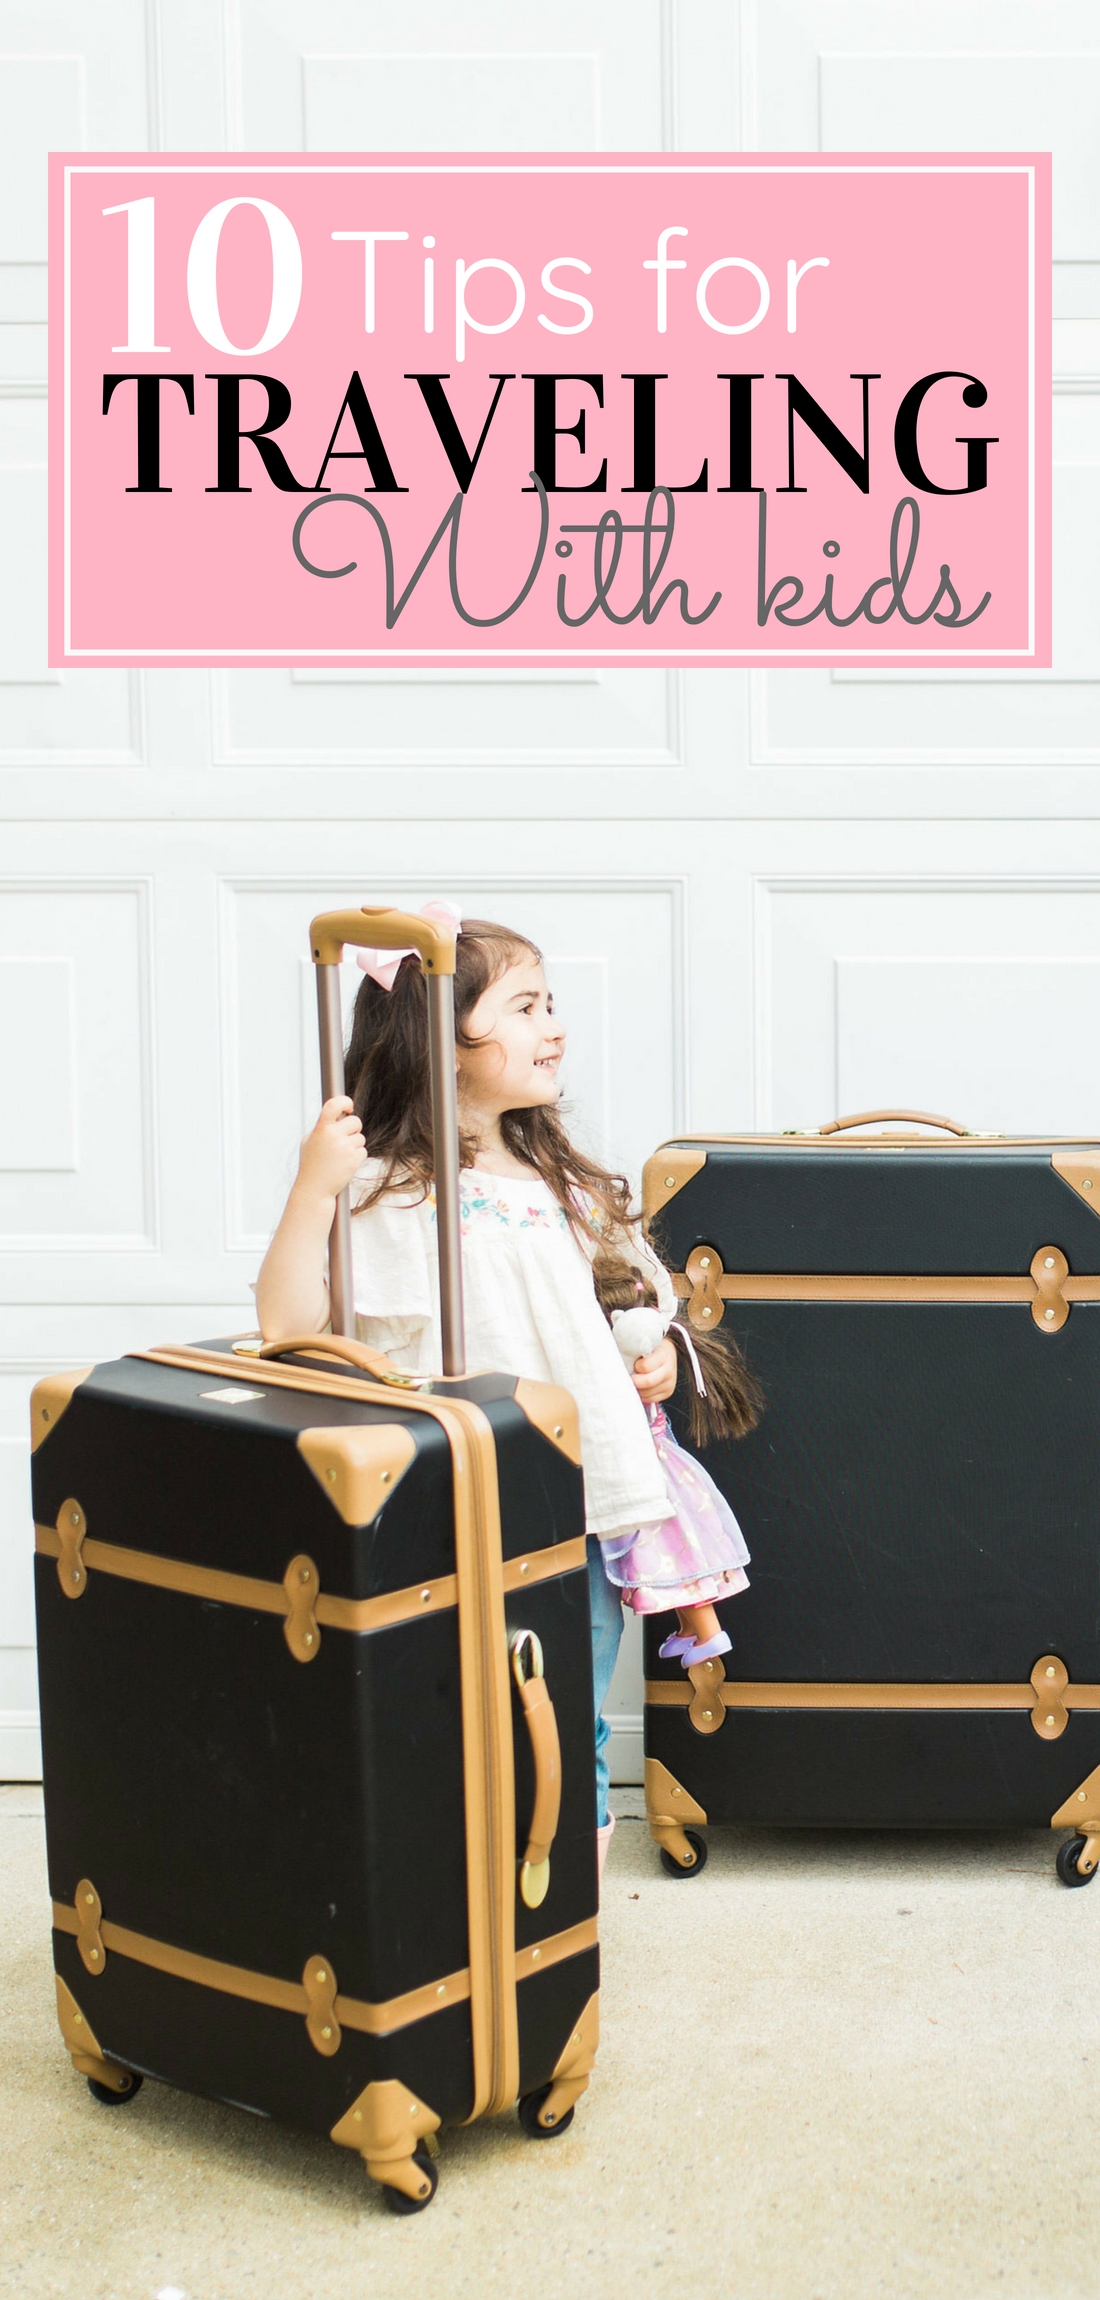 Mom blogger Lexi of Glitter, Inc. shares how to travel with young kids and her 10 best tips and tricks for a smooth road trip or flight. #travelwithkids #travelingwithkids #flyingwithkids #flyingwithbaby #familytrip #roadtrip #travel #vacationtips Click through for the details. | glitterinc.com | @glitterinc